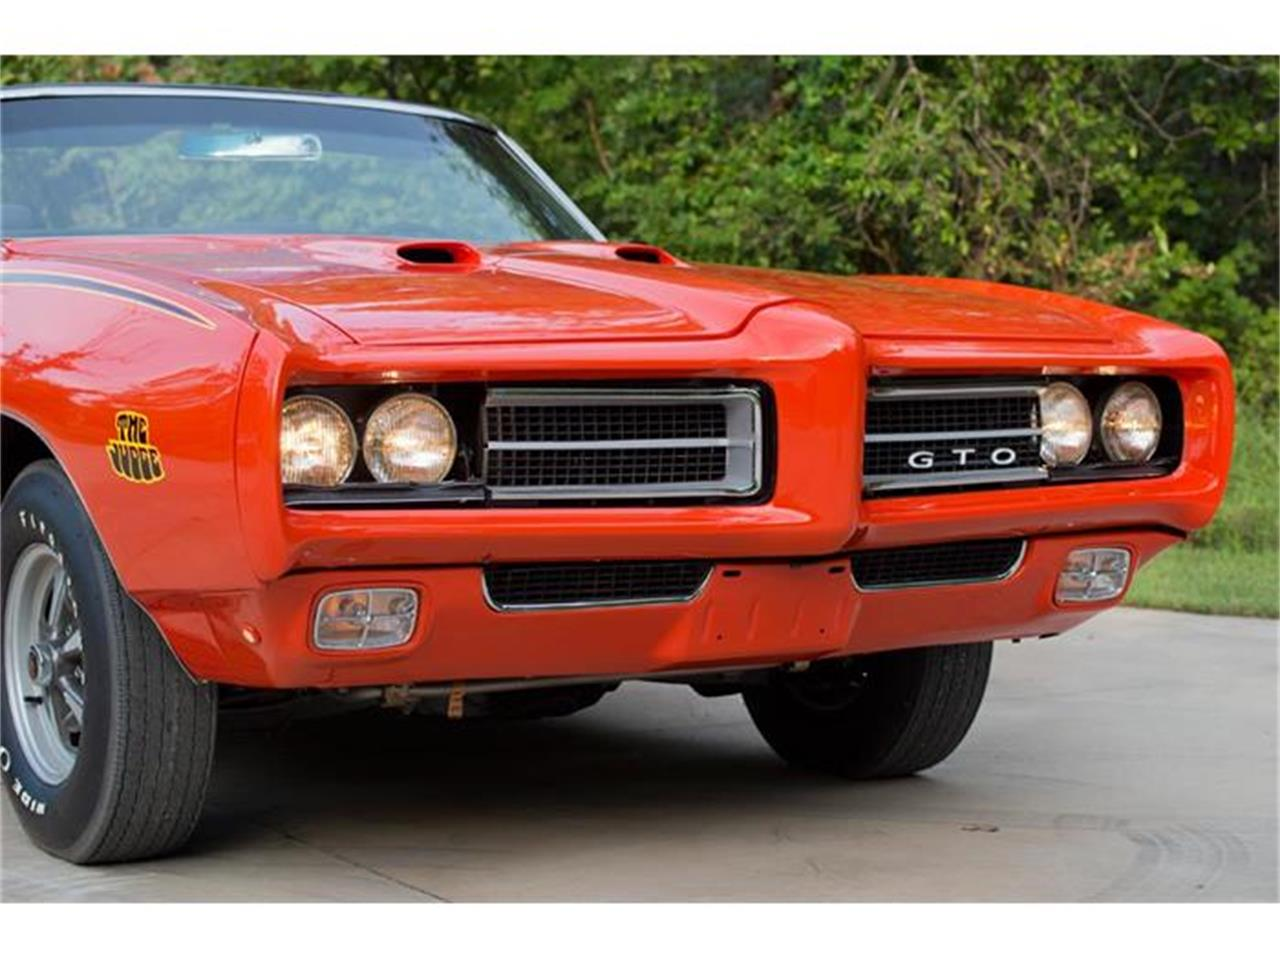 Large Picture of Classic '69 Pontiac GTO (The Judge) located in Conroe Texas - $179,000.00 - H937